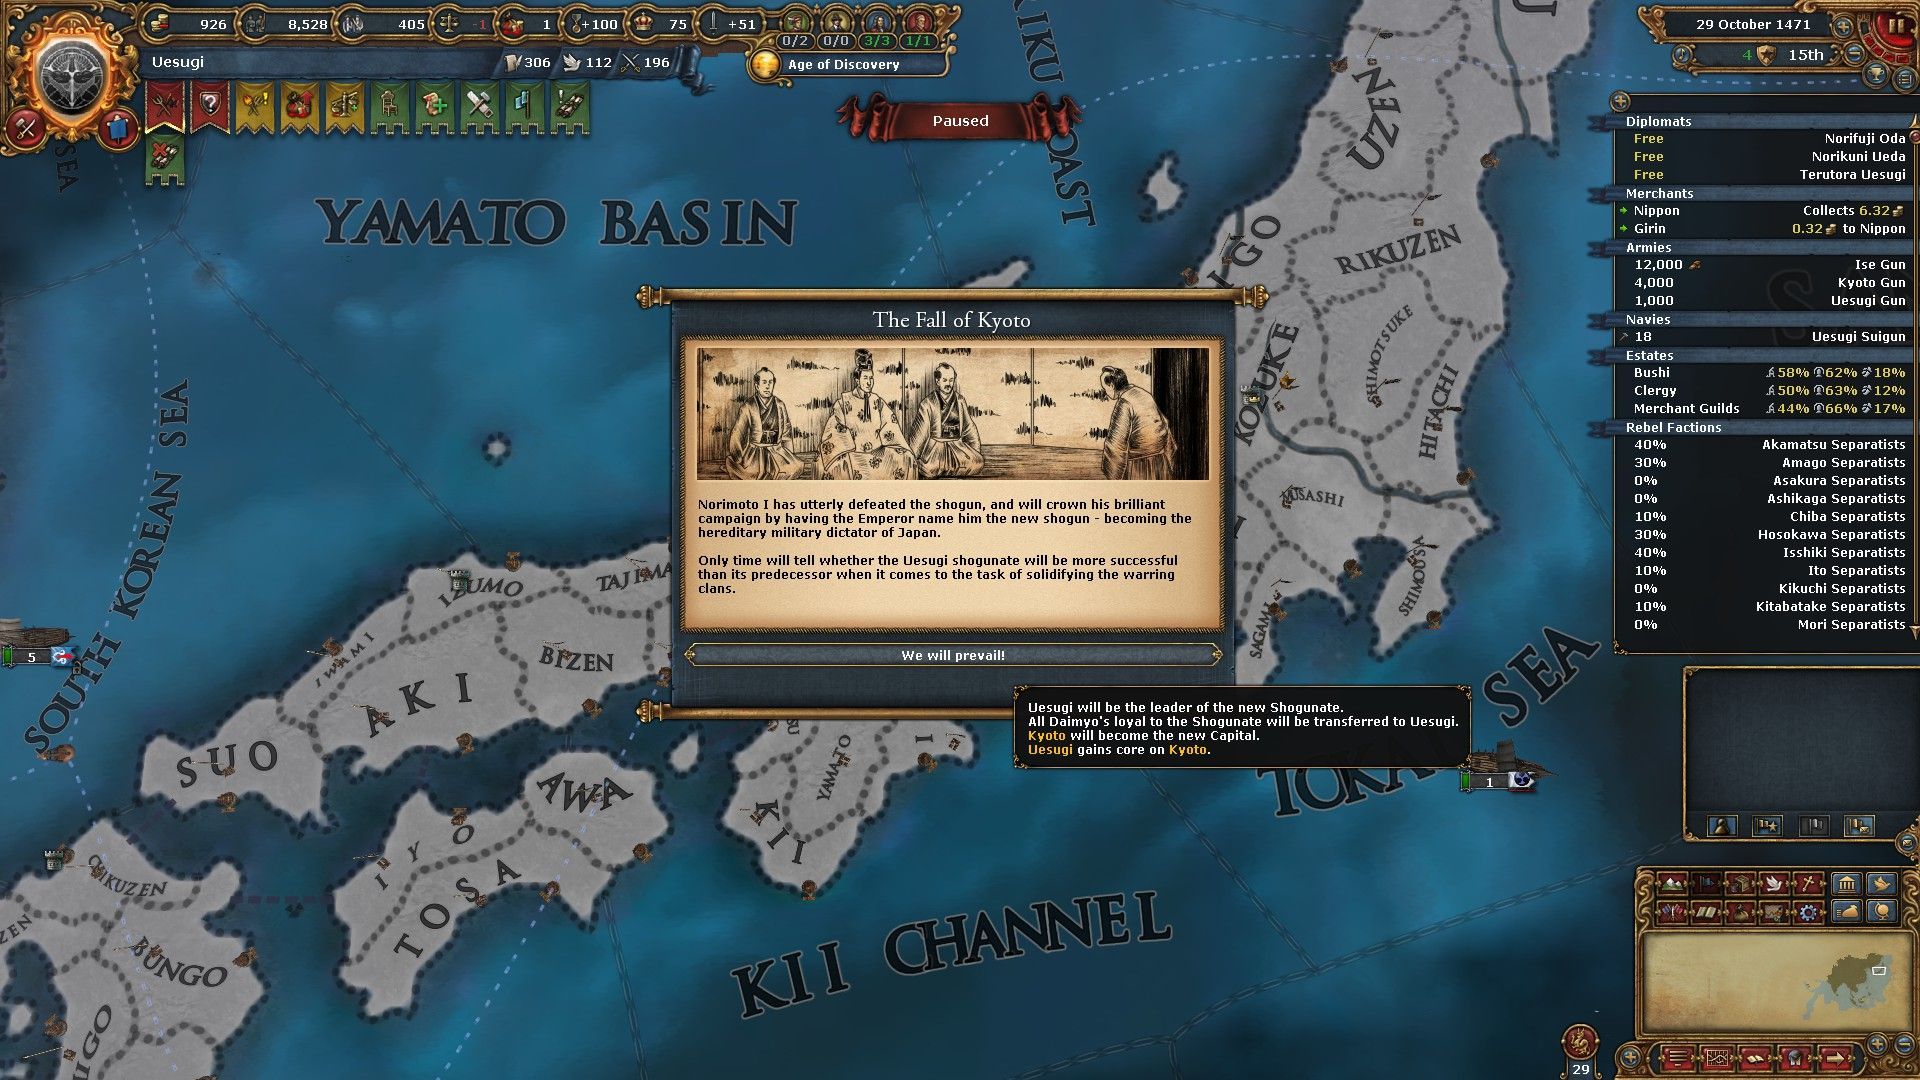 Way of the Samurai - After Action Report on Uesugi | Paradox